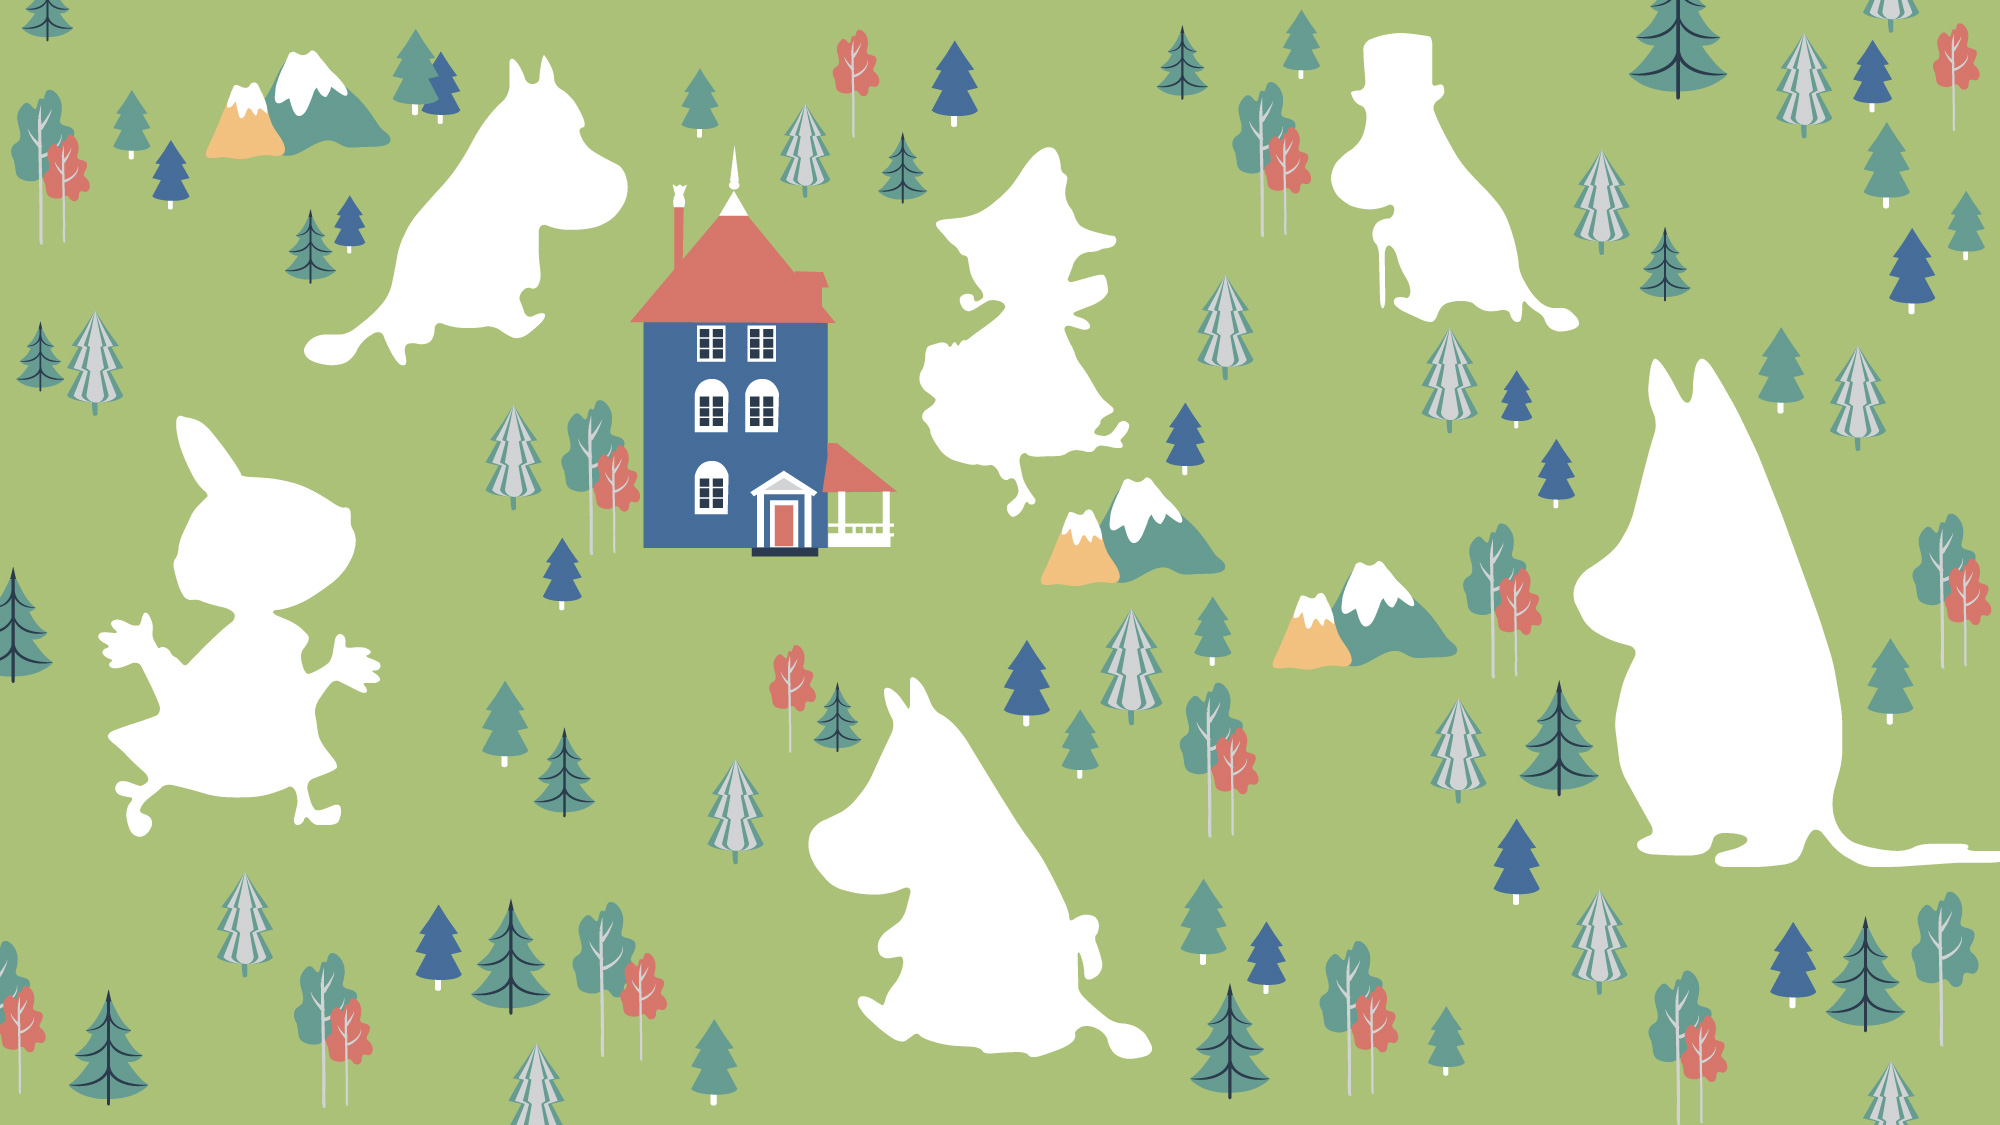 an illustration of moomin valley and moomin characters